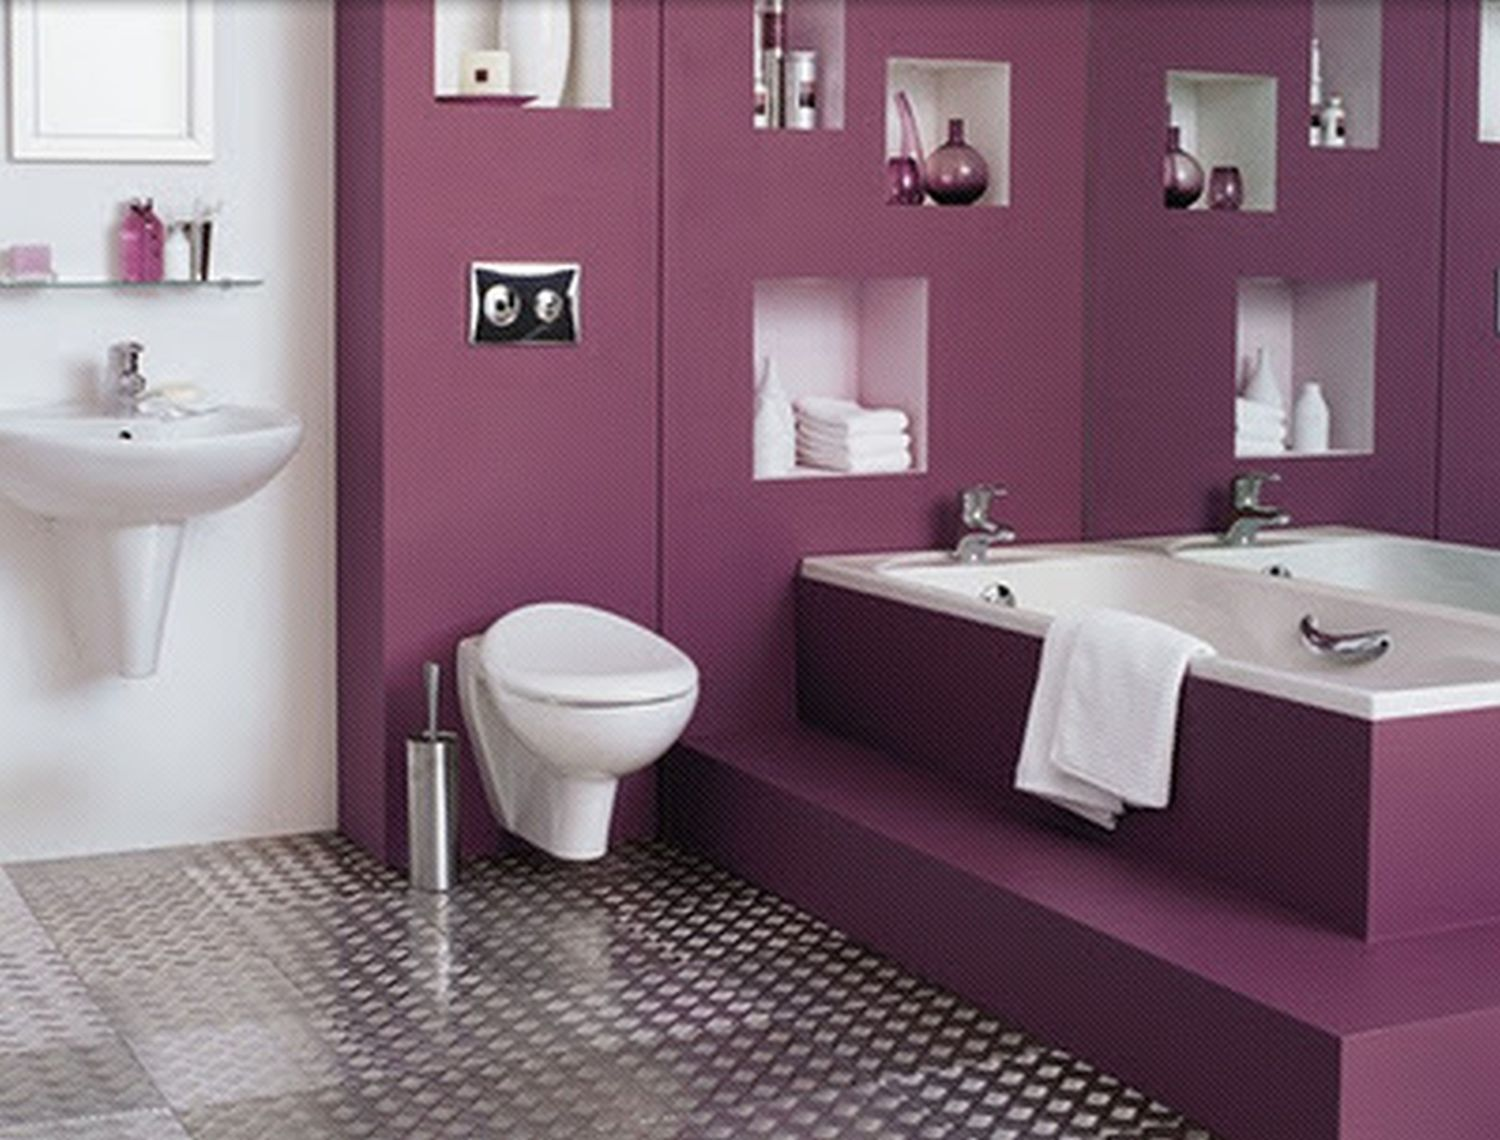 Innenarchitektur wohnzimmer lila master the art of bathroom decoration with the help of these ideas